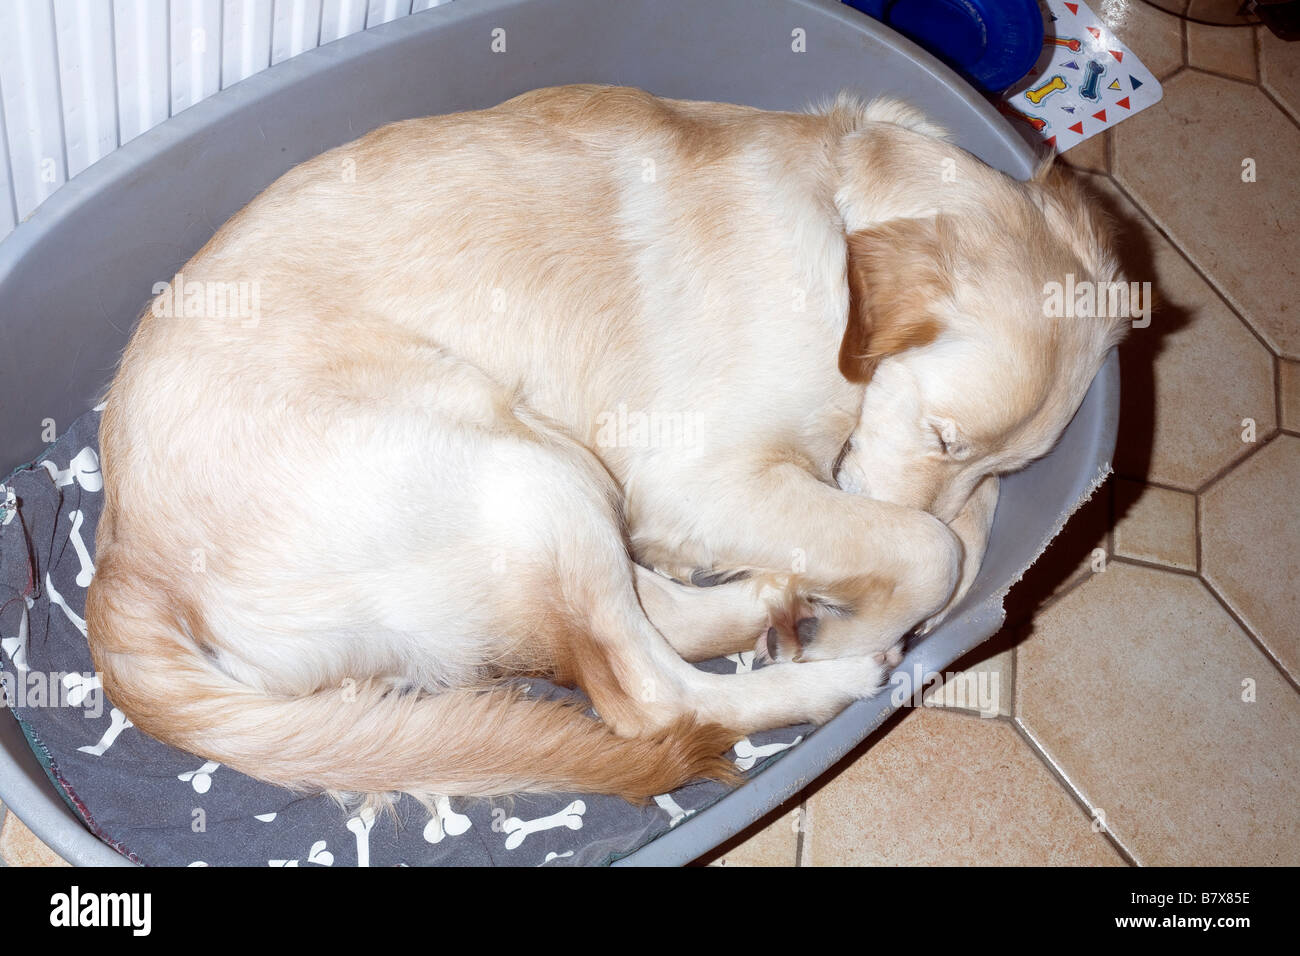 9 month old golden retriever Xylo curls up asleep in his bed - Stock Image